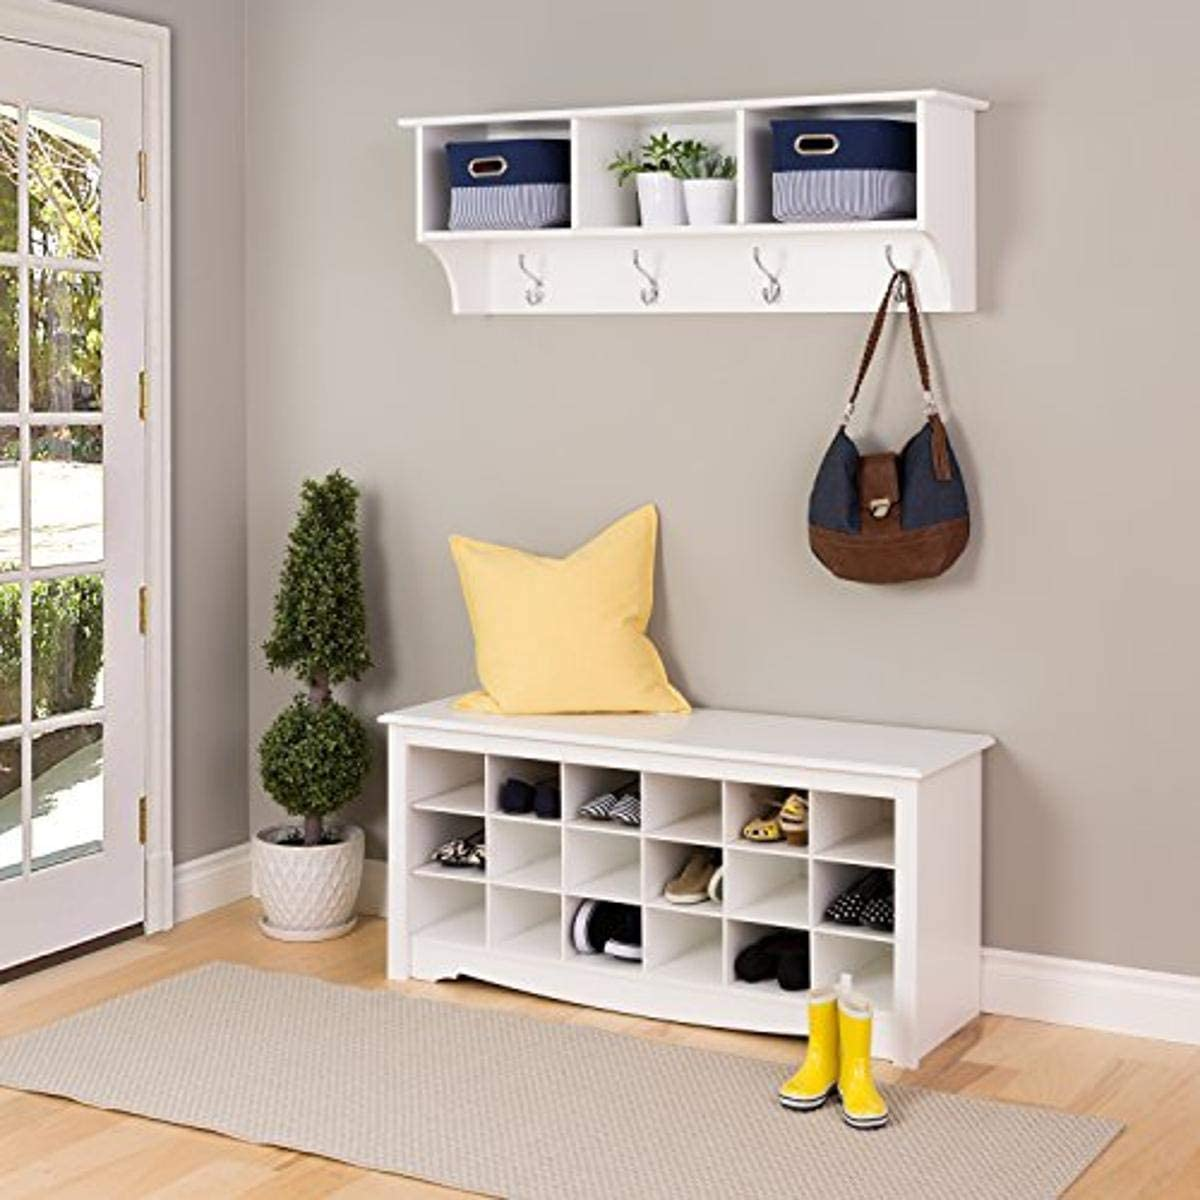 Prepac Hanging Entryway Shelf with - shop White Bench Shoe Large special price Cubby